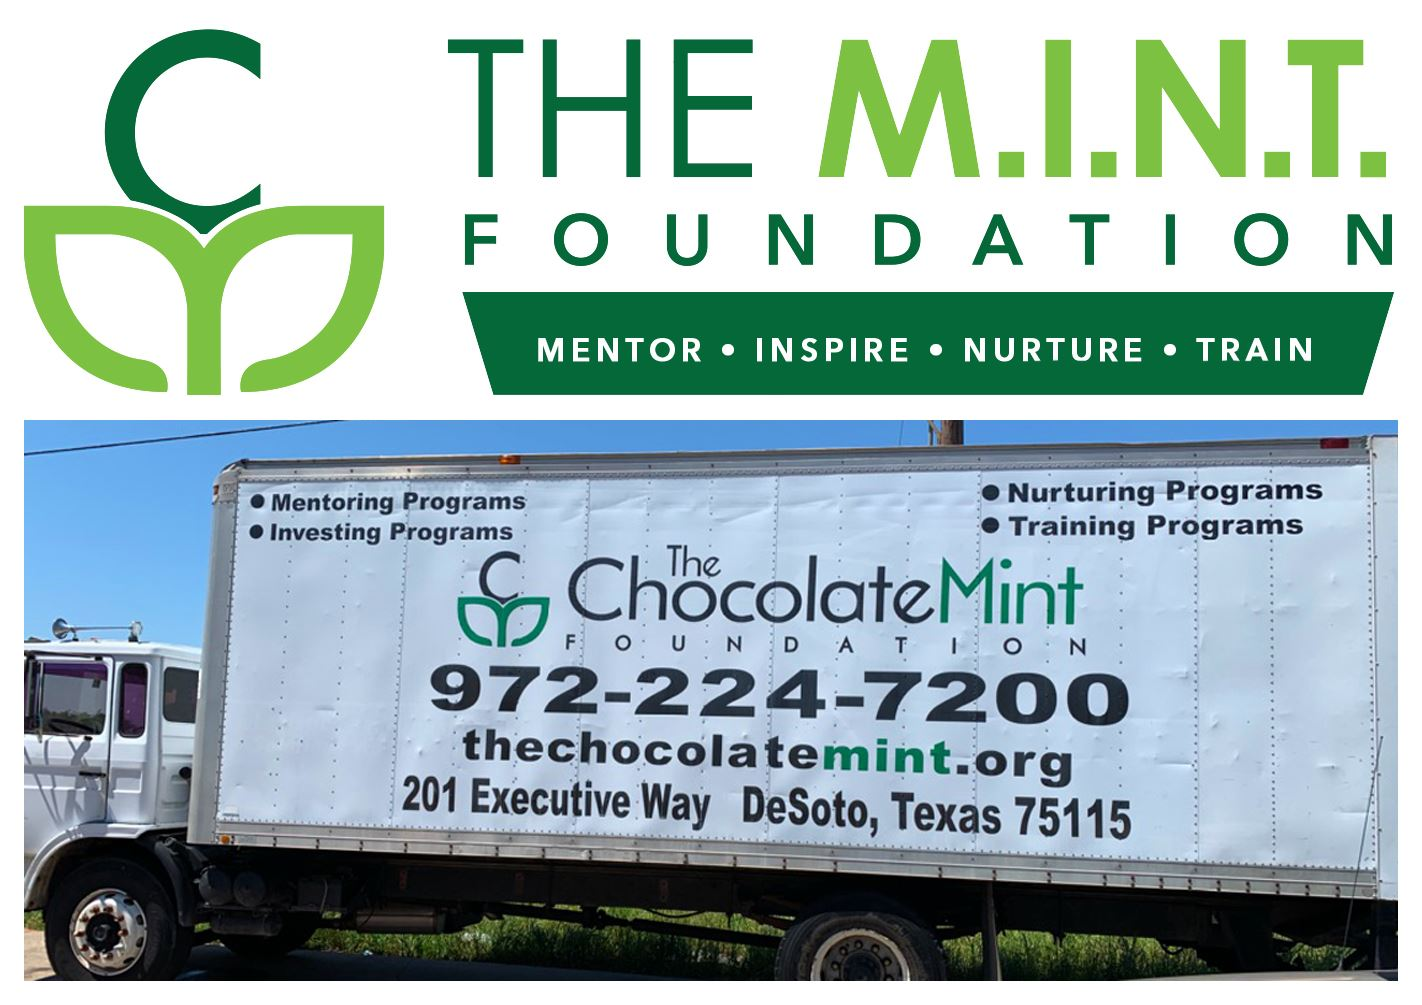 MINT Foundation Image Opens in new window